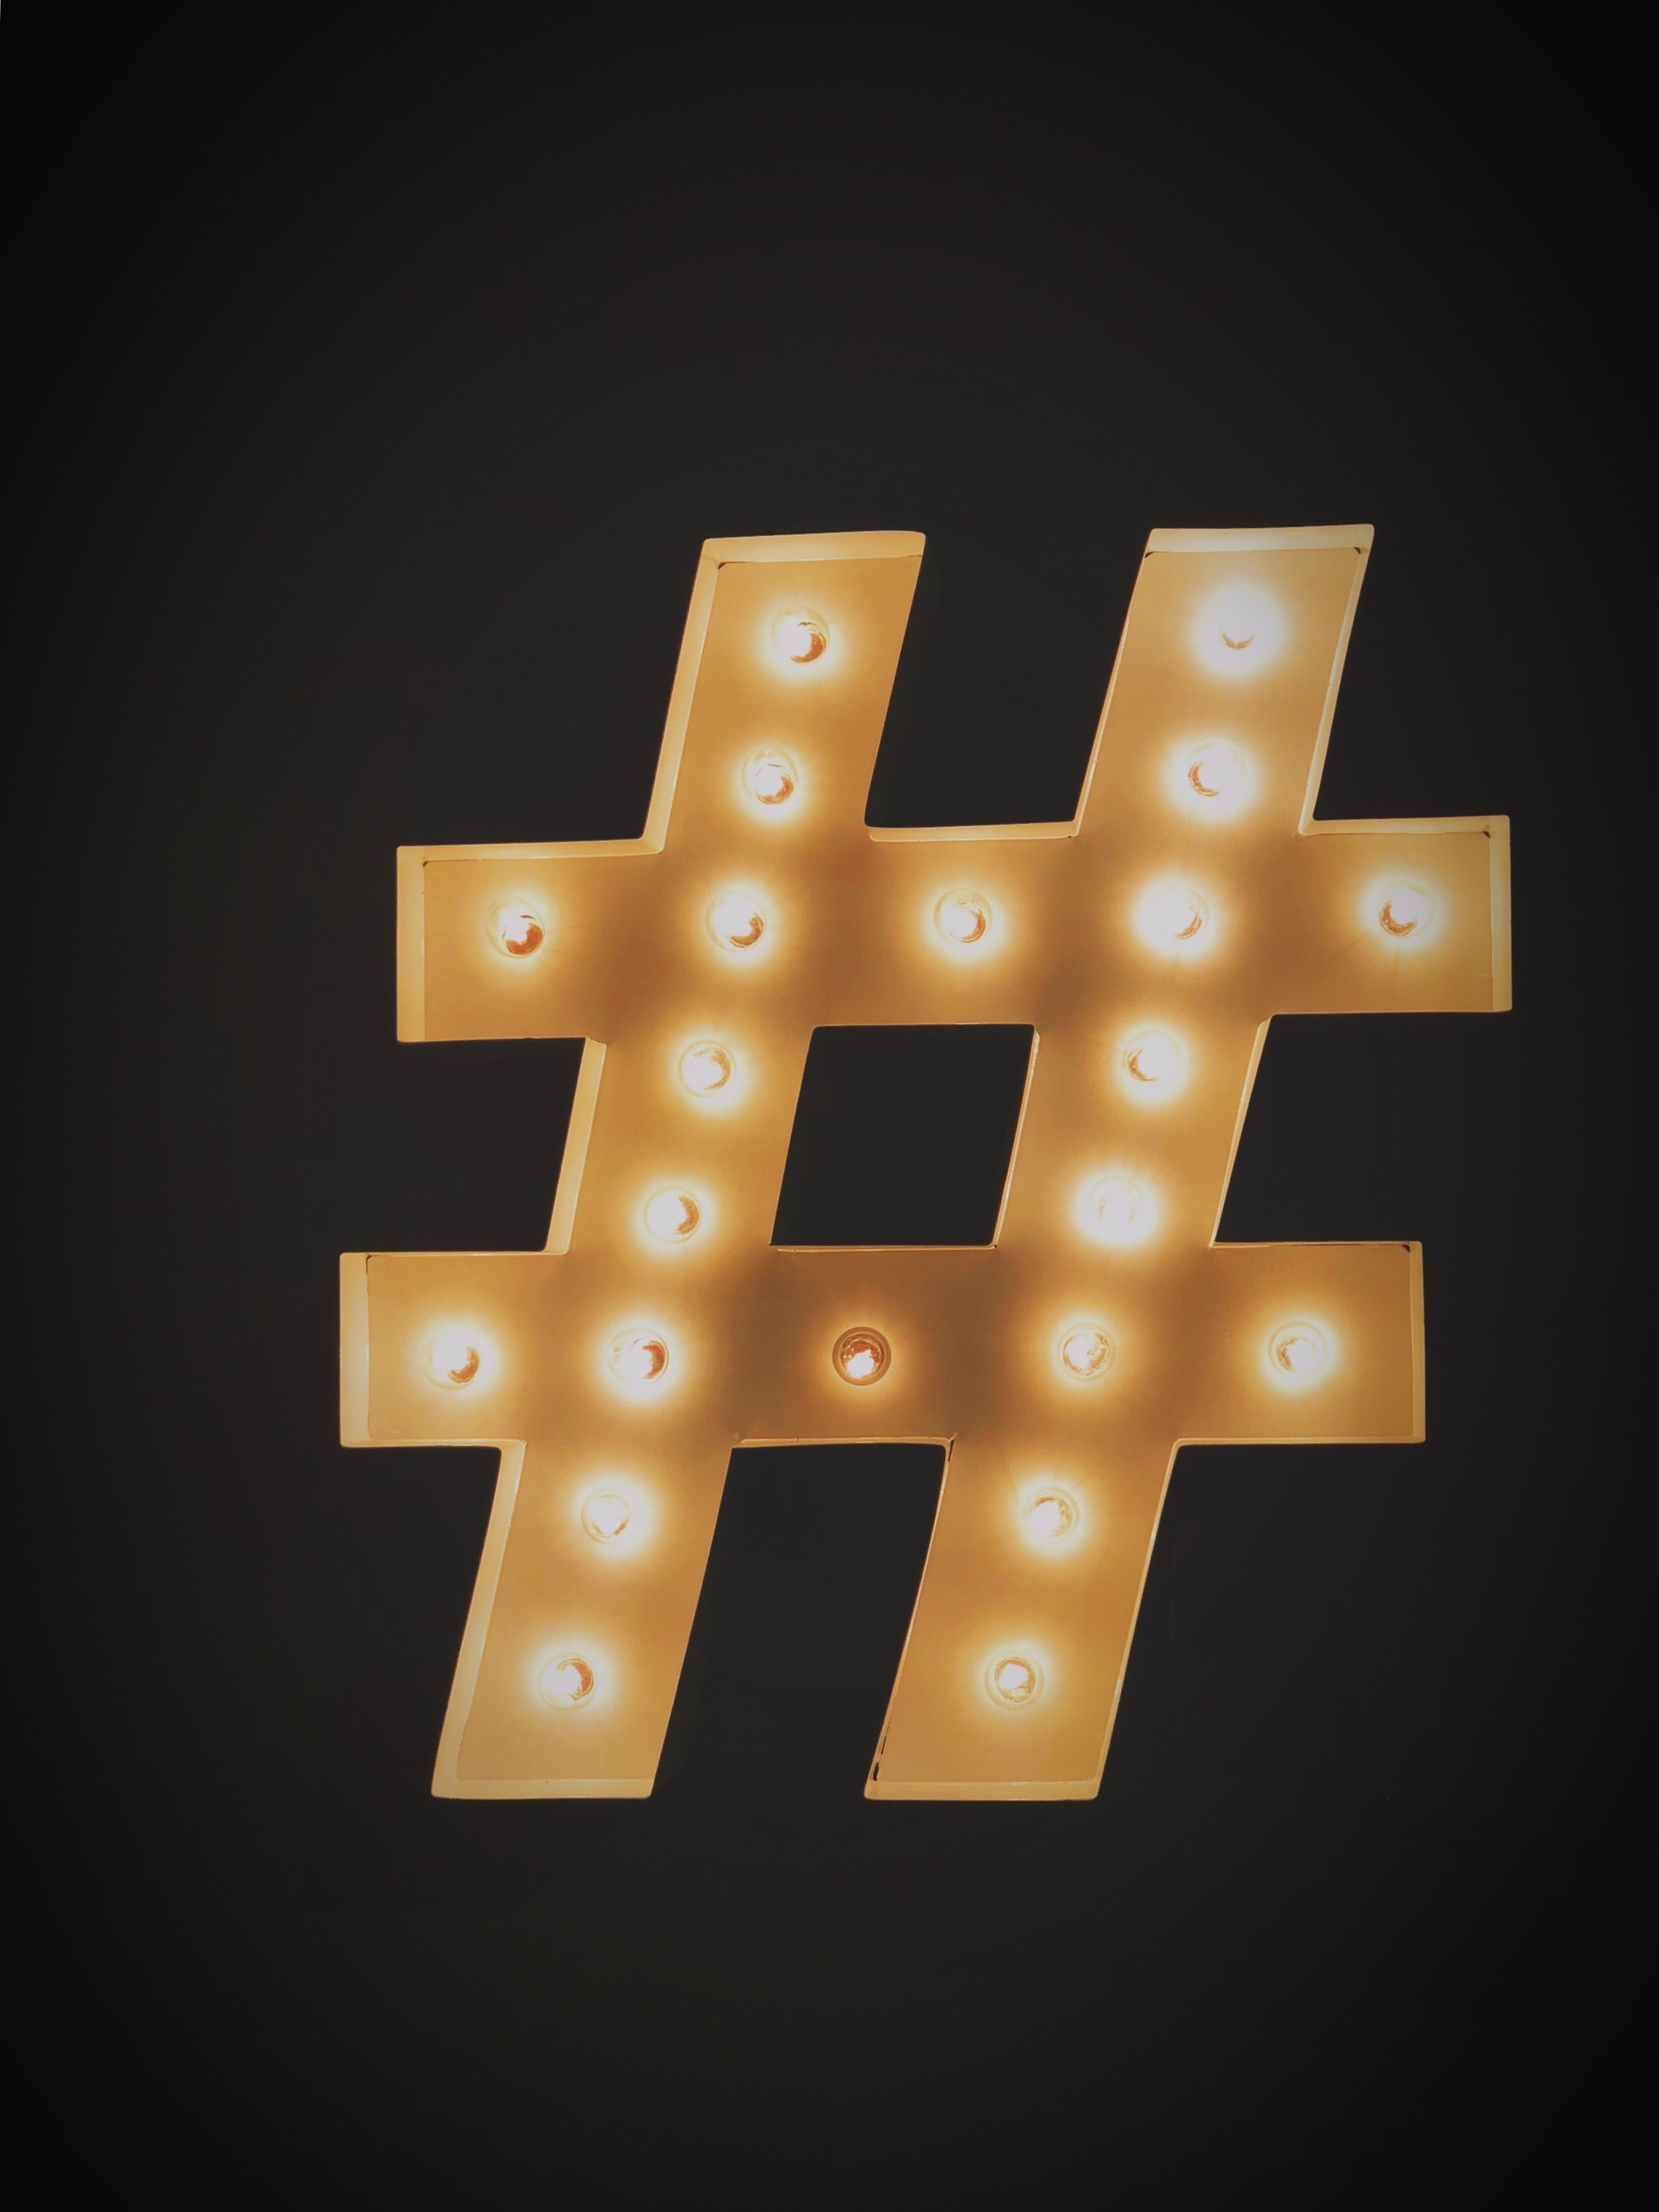 A Financial Advisor's Guide To Using Hashtags On Social Media Featured Image